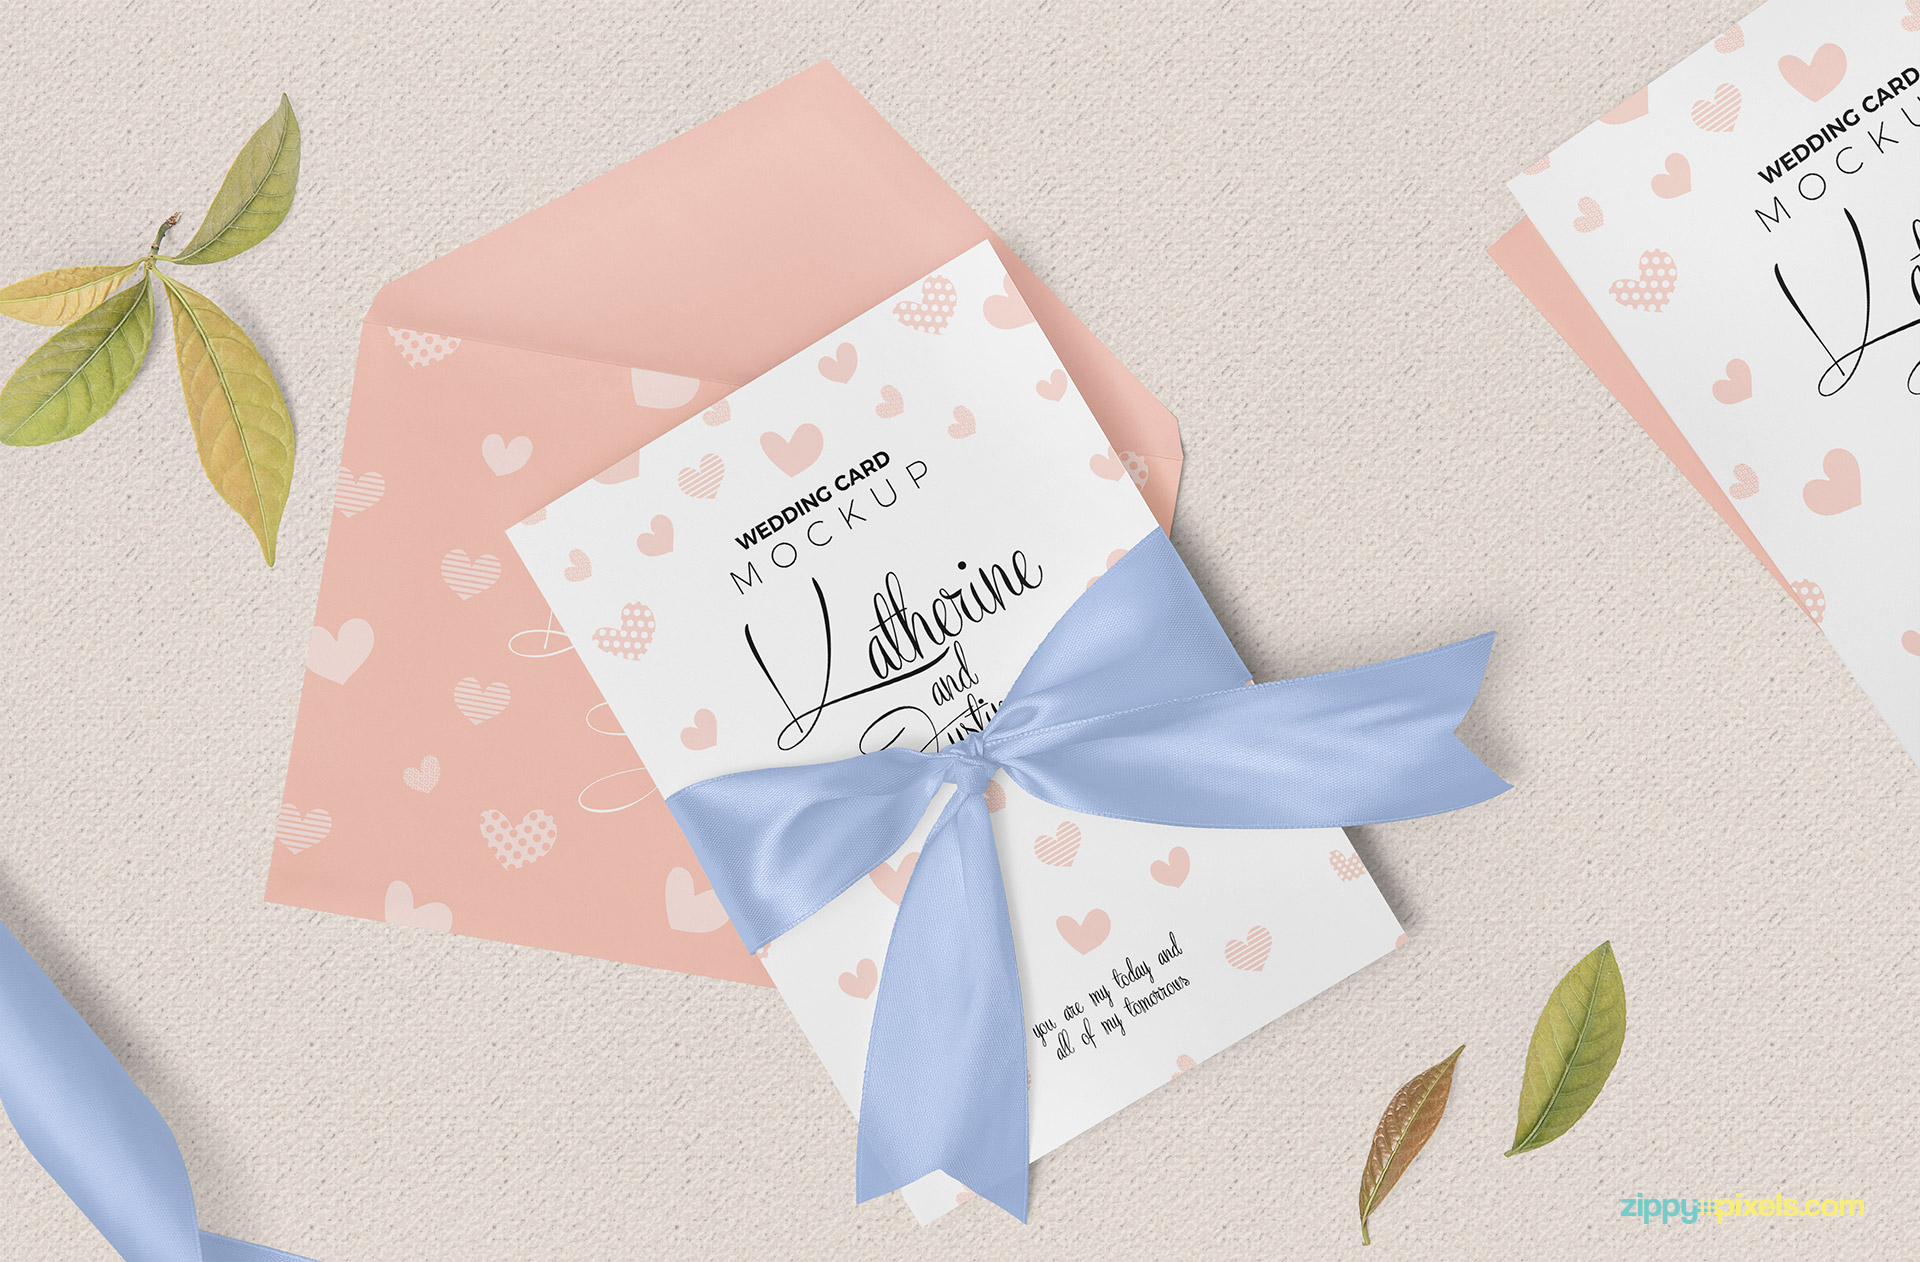 Wedding invitation card mockup download for free designhooks classy beautiful wedding invitation card mockup stopboris Image collections